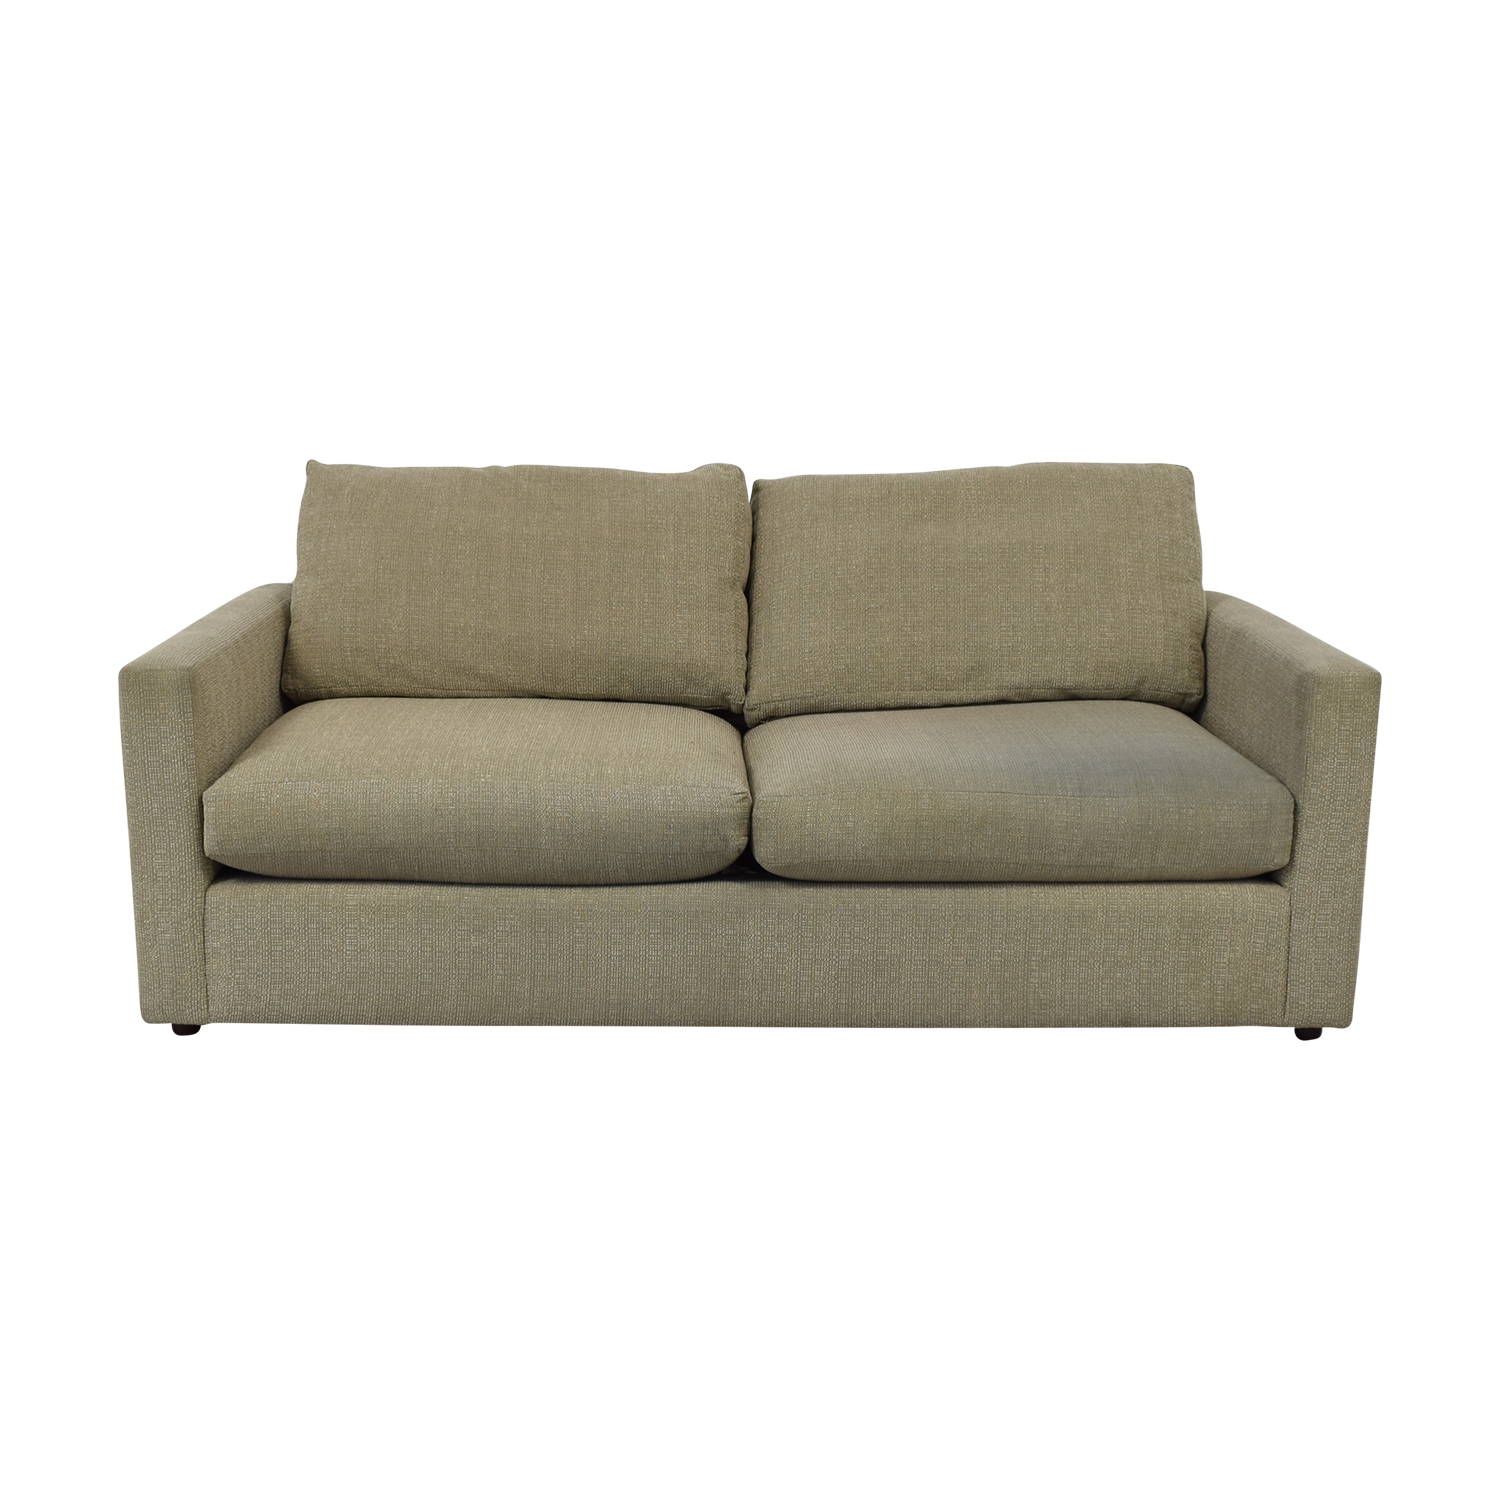 shop Macy's Two Cushion Sofa Macy's Sofas